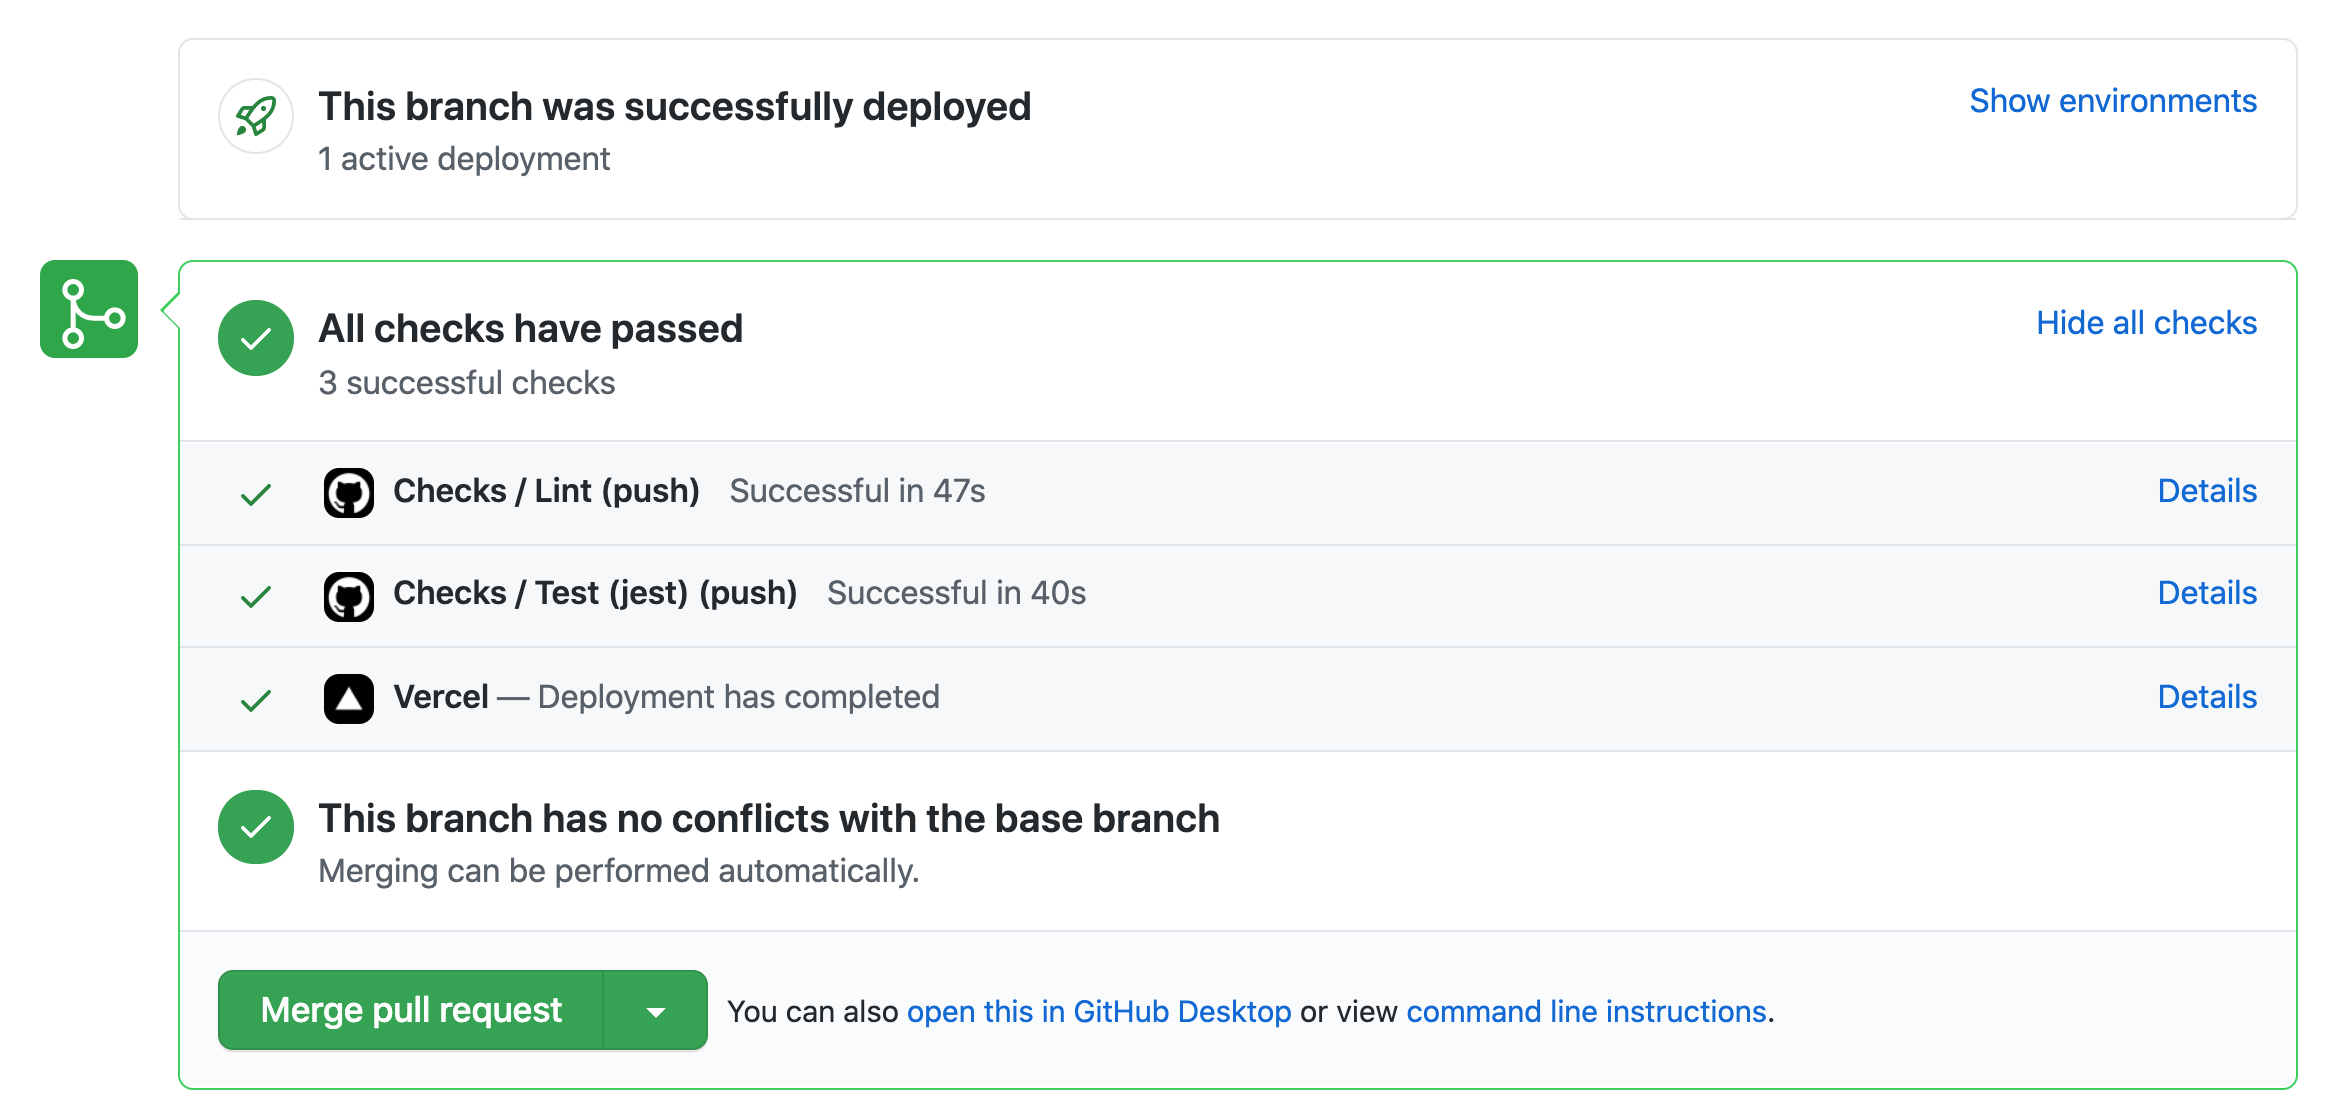 Passing GitHub Action Workflows with a successful build on a PR